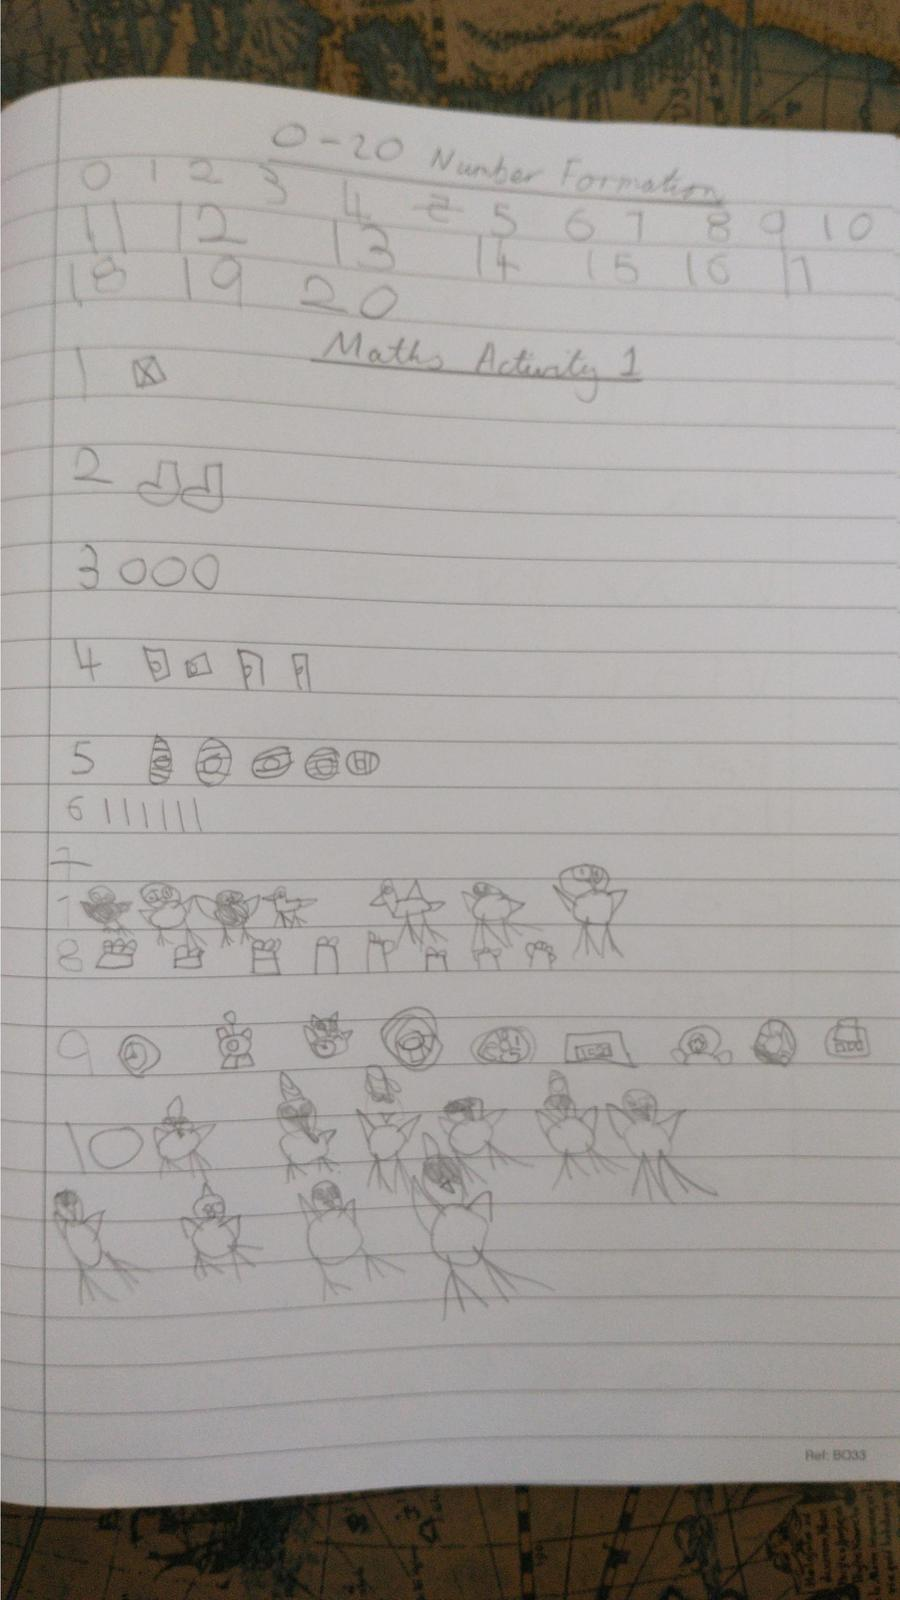 Violet had a go at forming her numbers and drew pictorials too, well done!